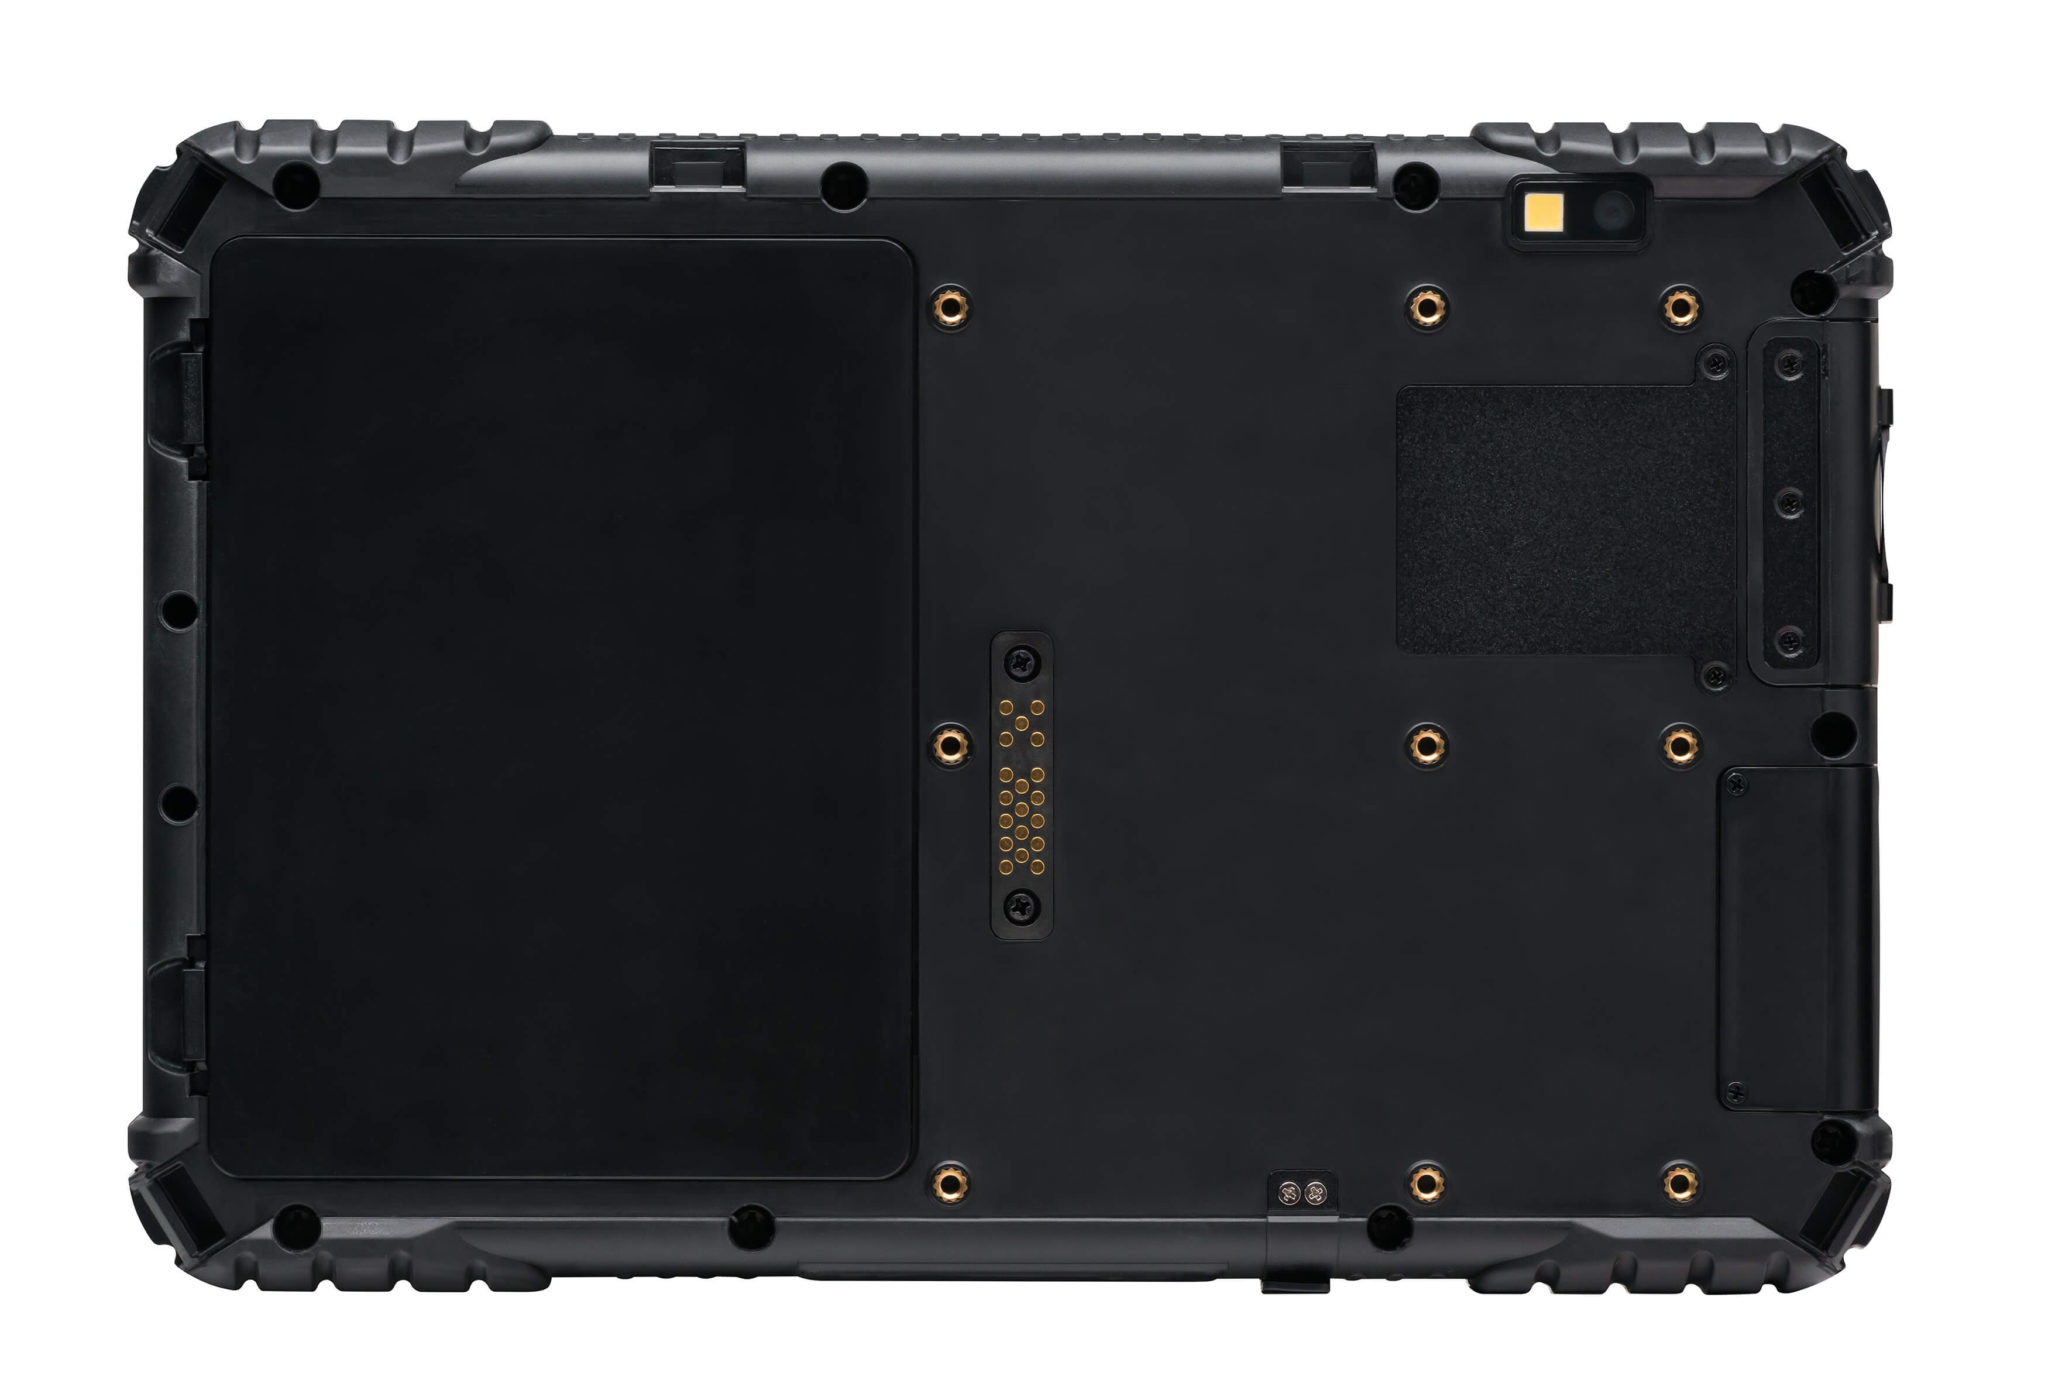 Algiz-8X-rugged-tablet-backview(1)